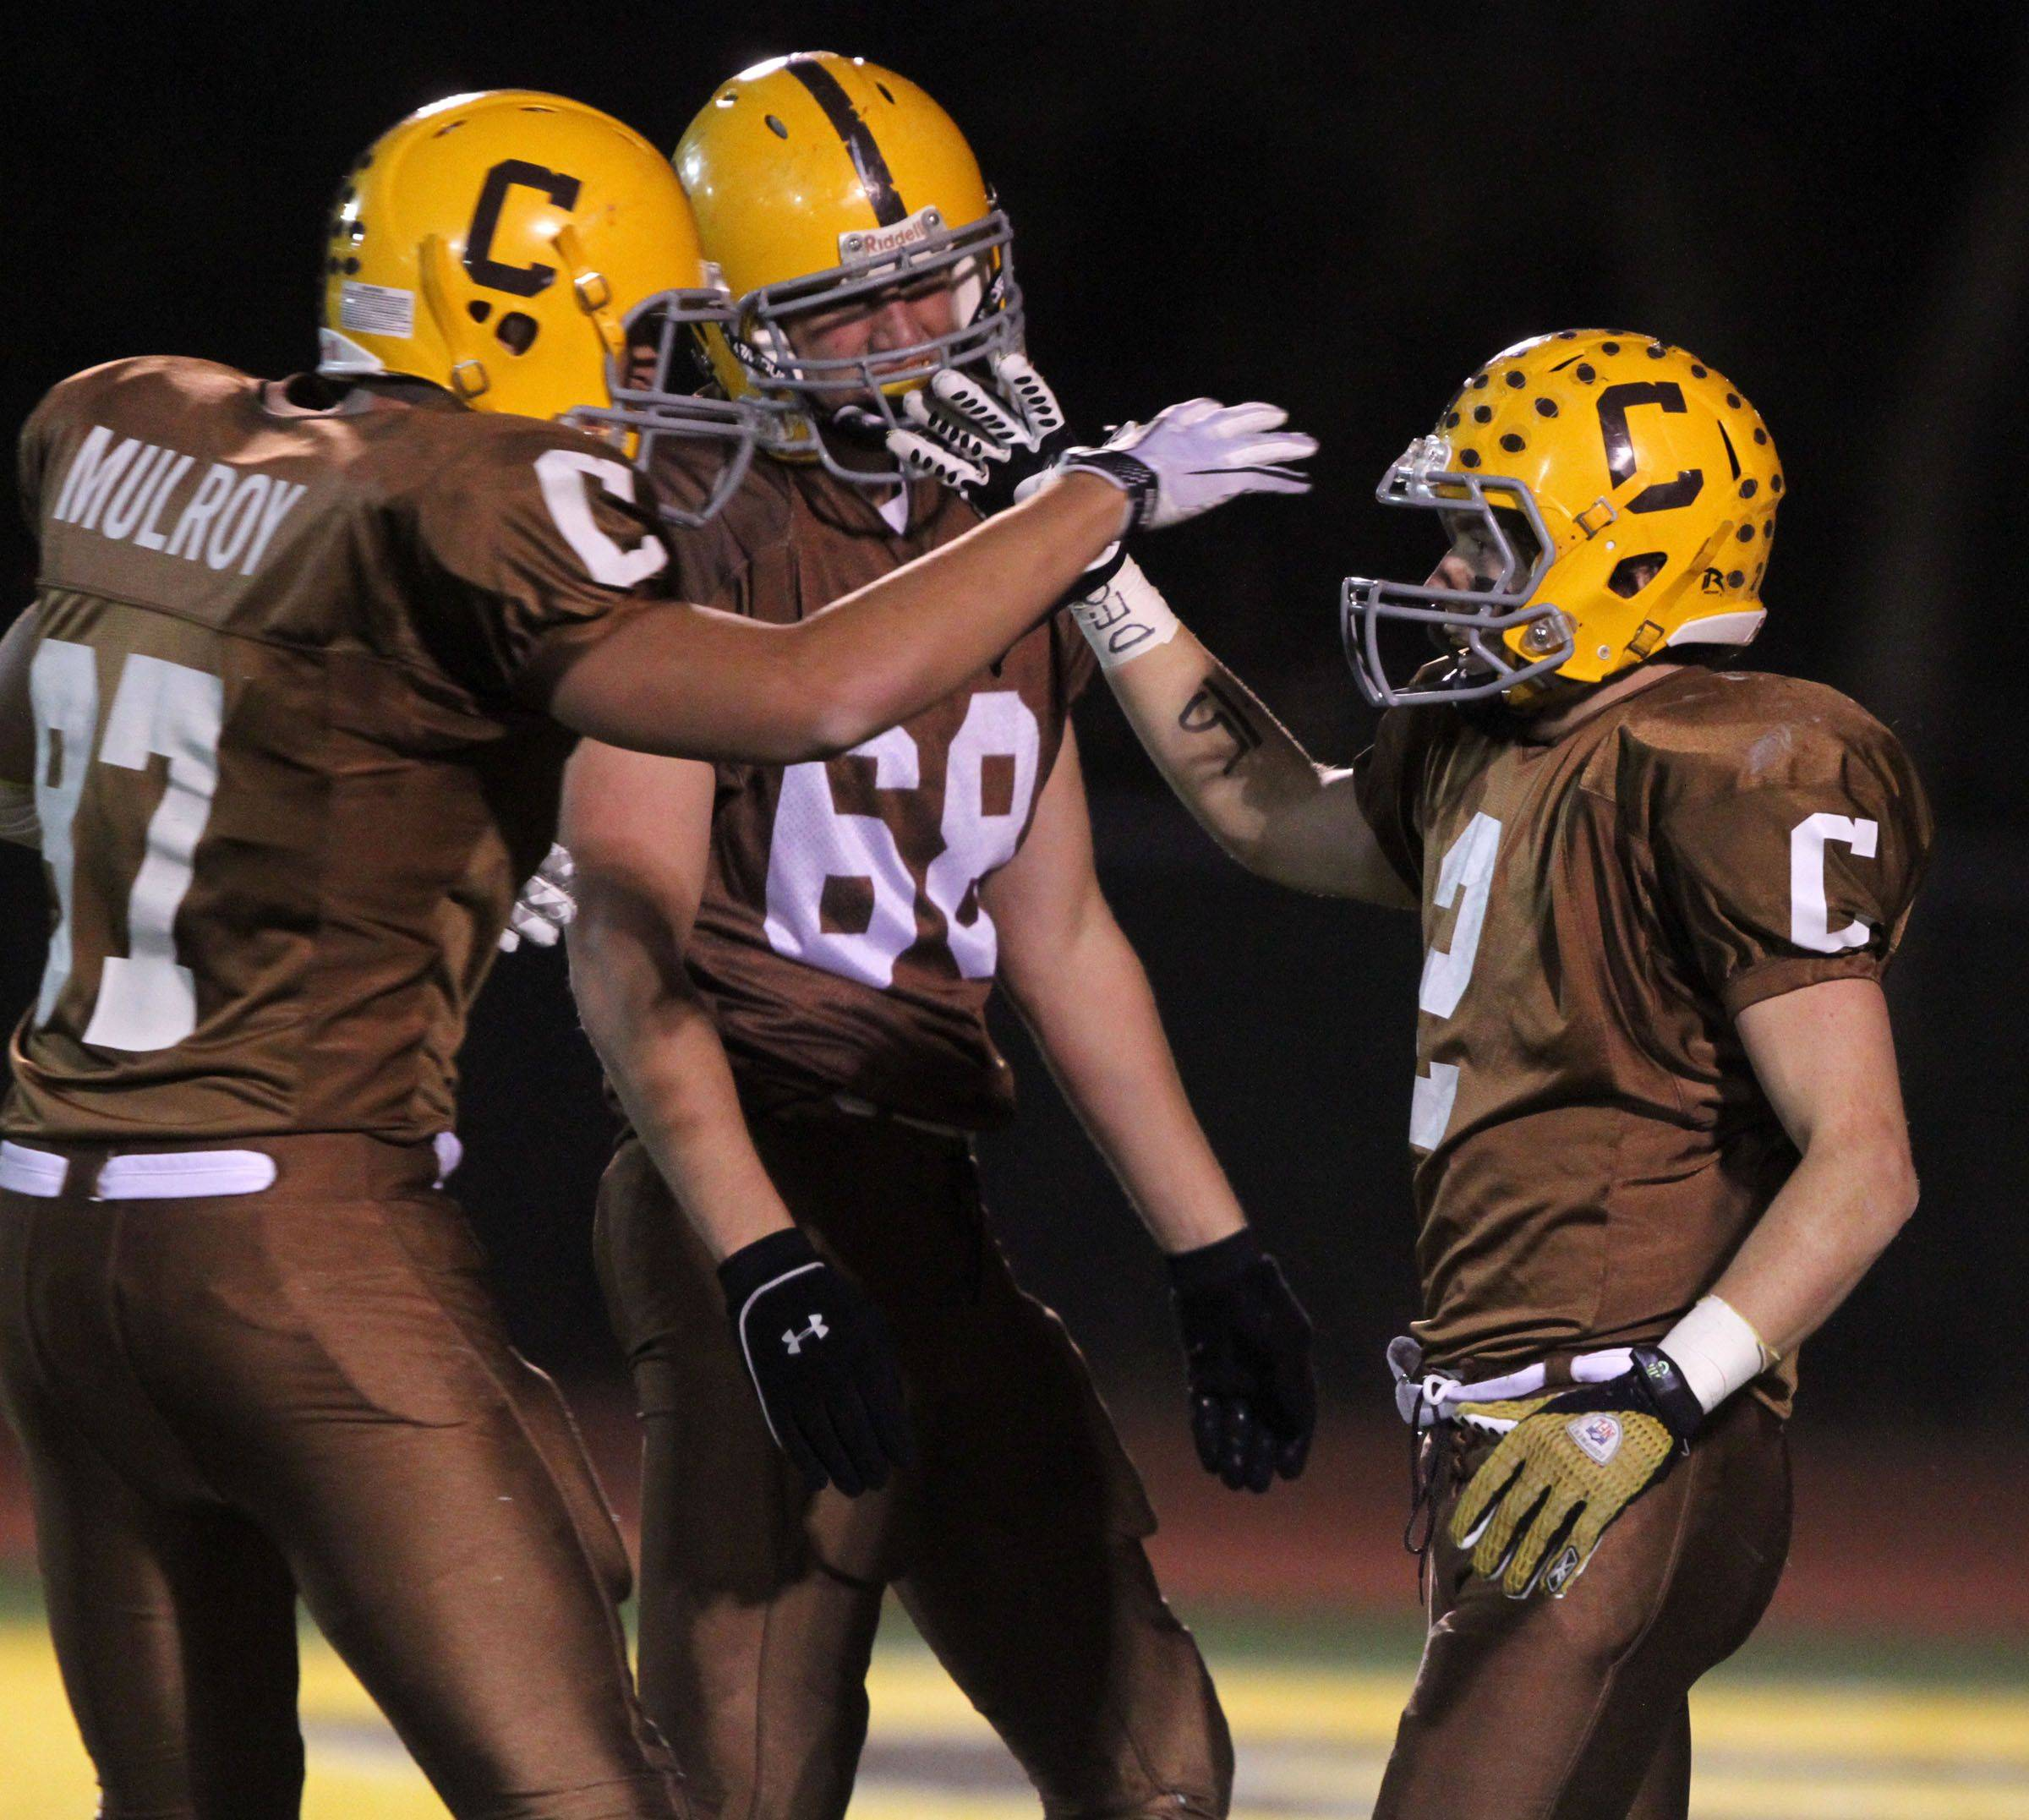 Carmel's Patrick Mulroy, left to right, and Jack Butler celebrate a touchdown by Brian Brennam in round one of Class 7A state playoffs at Carmel in Mundelein on Friday, October 29.